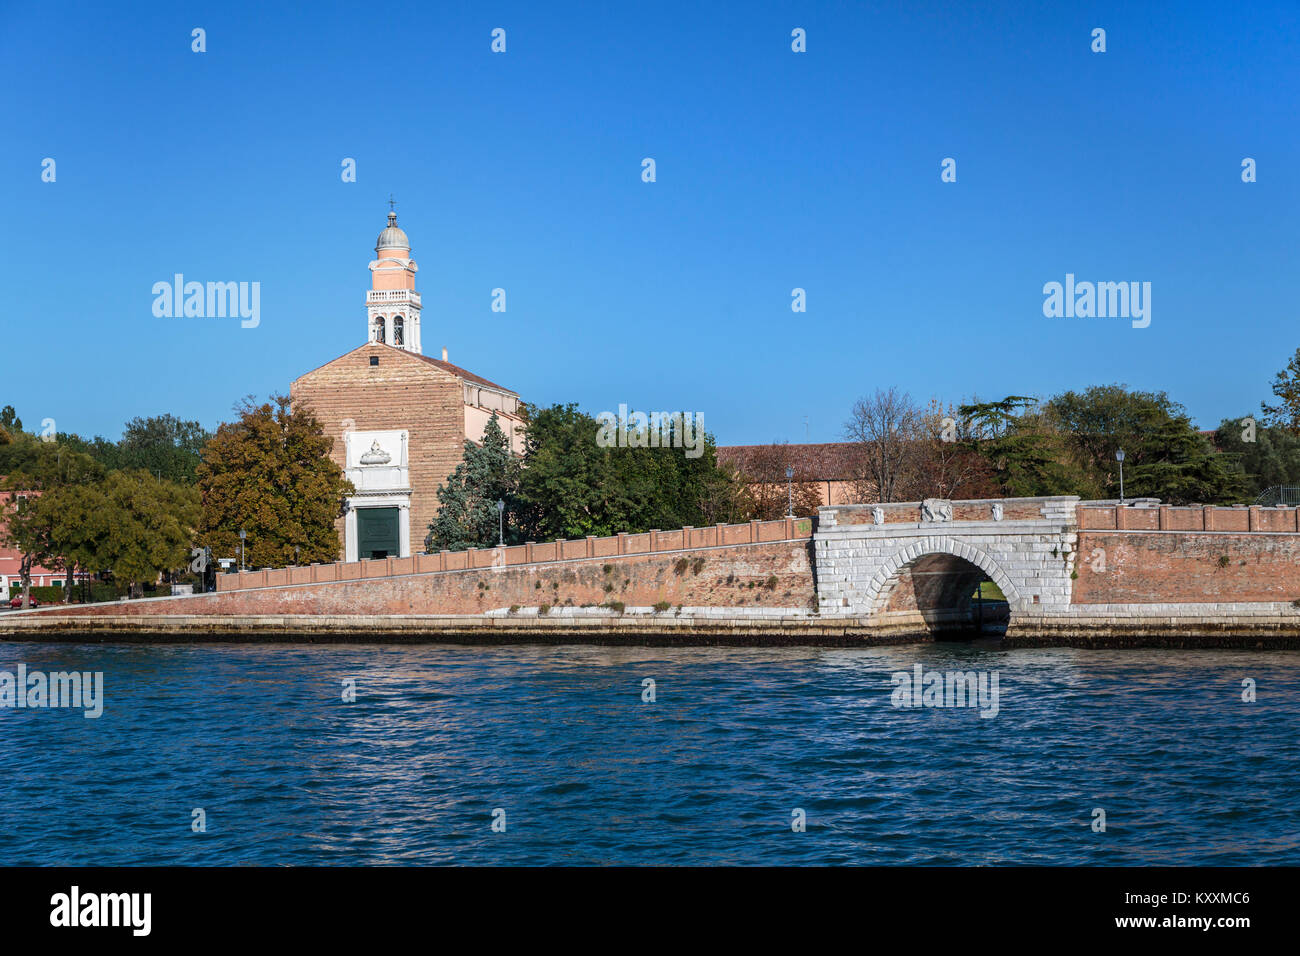 Motorized traffic and water taxis along the Grand Canal in Veneto, Venice, Italy, Europe, - Stock Image